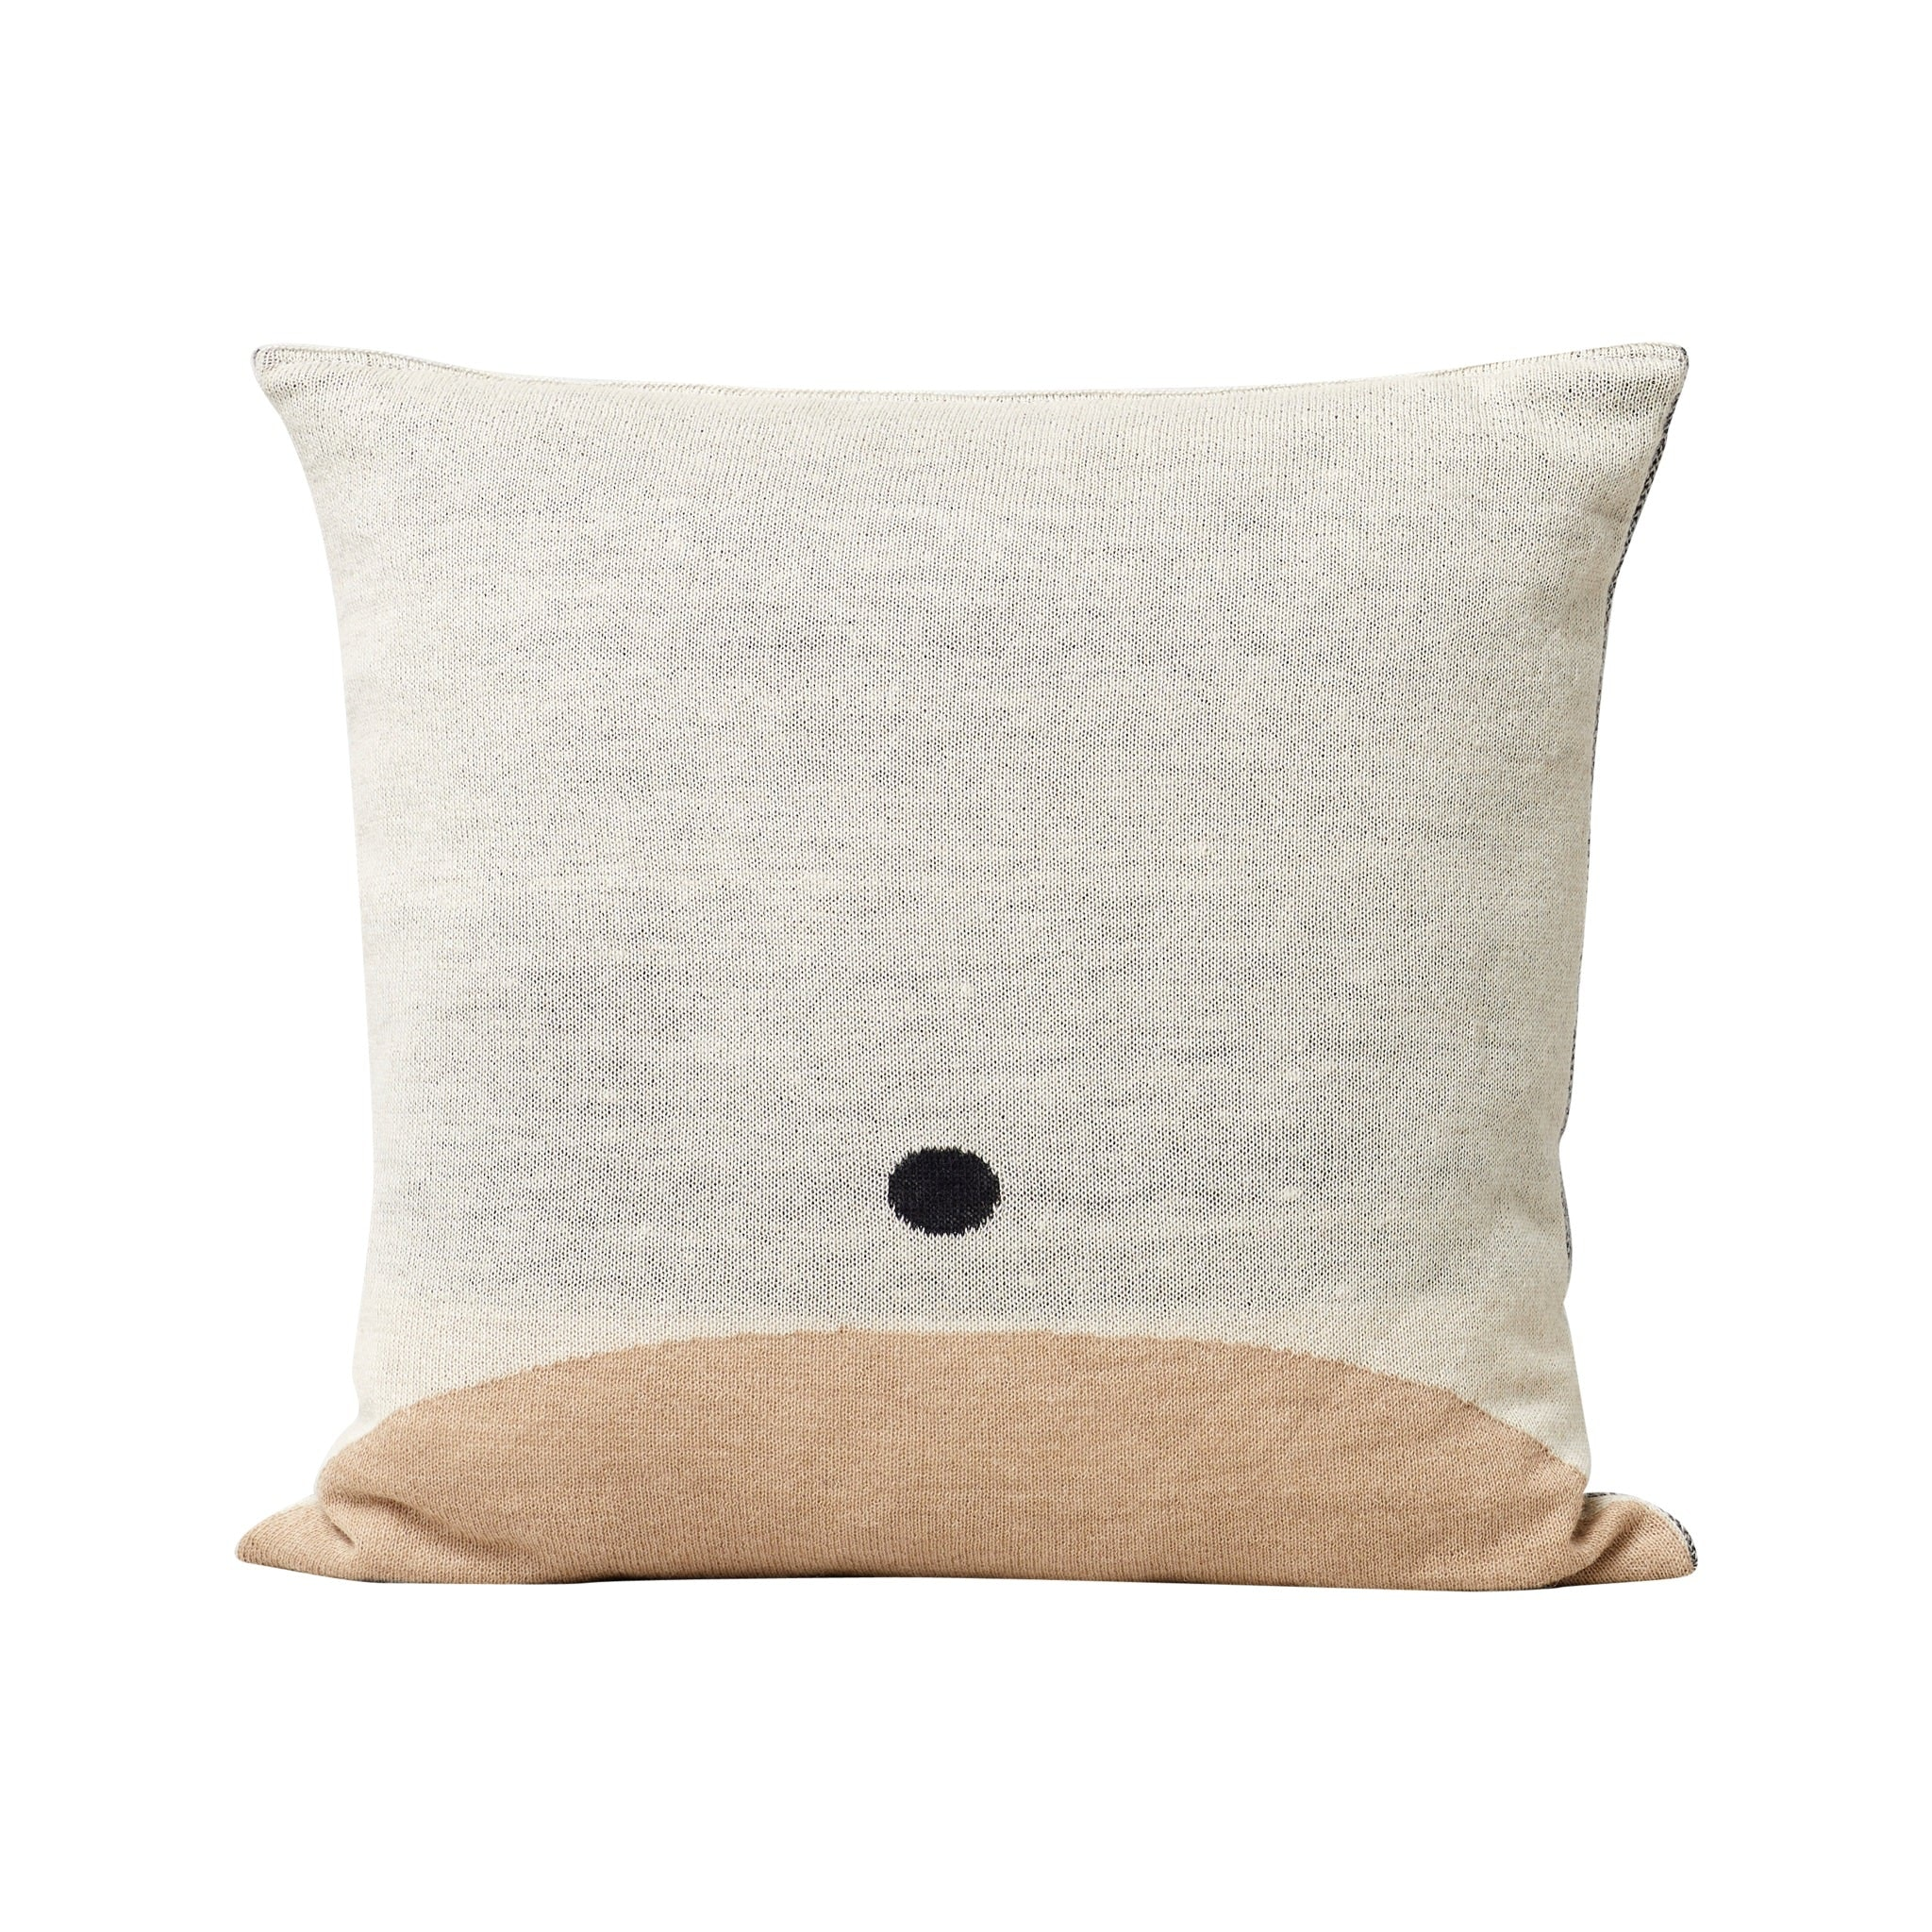 Aymara Cushion Pattern Cream by Form and Refine